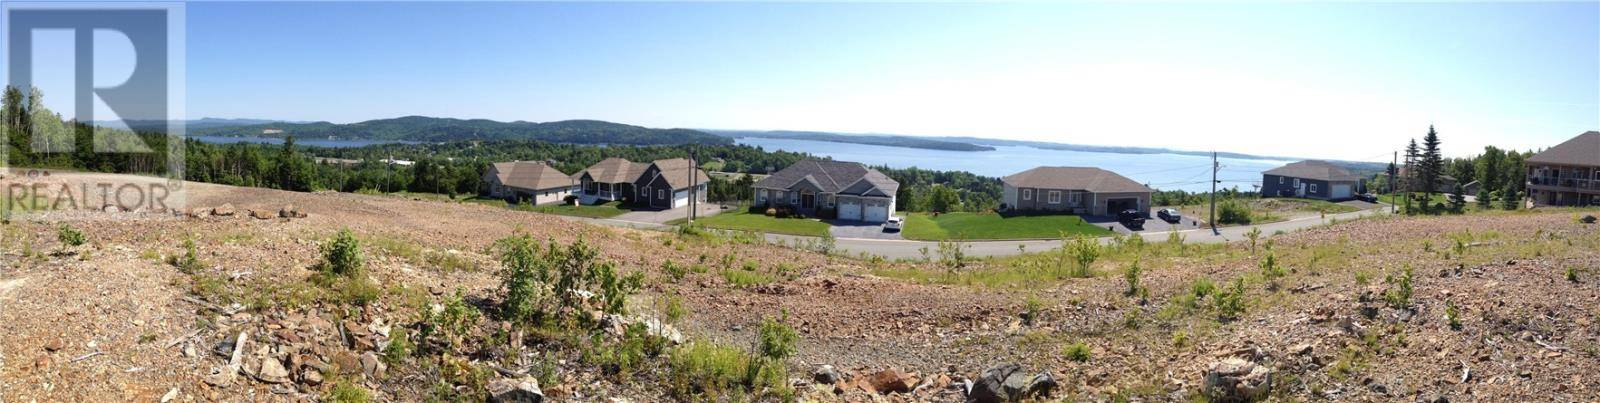 Home for sale at 22 June Ave Grand Bay-westfield New Brunswick - MLS: NB028752